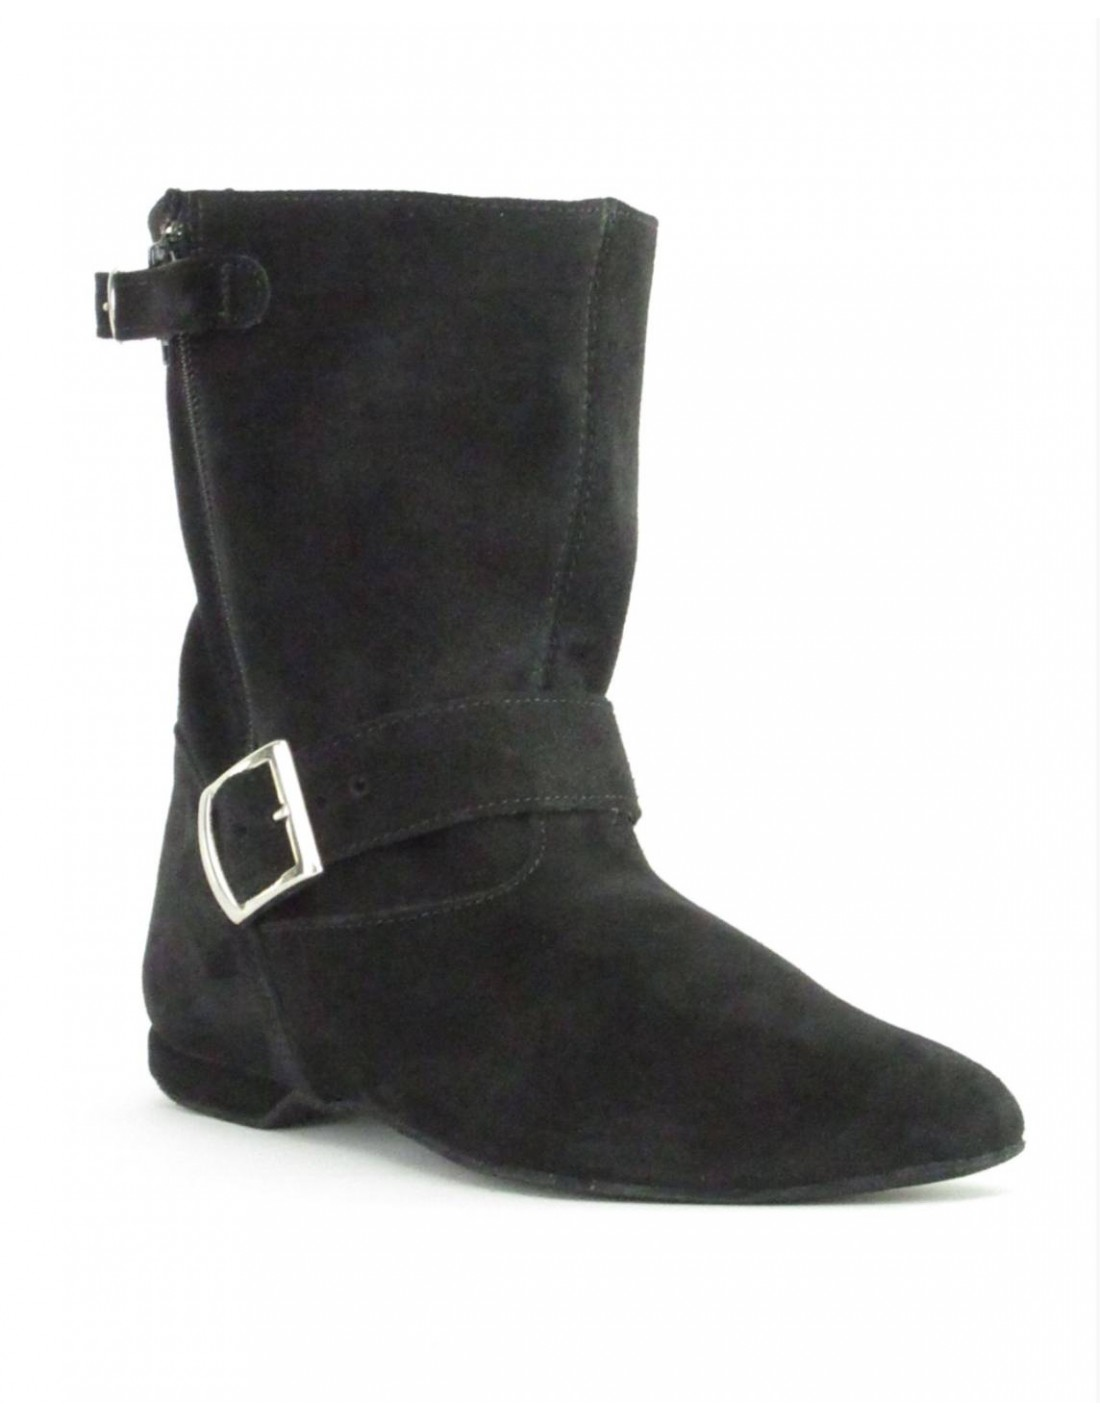 Flat Suede Leather West Coast Swing Ankle Boot With Buckle